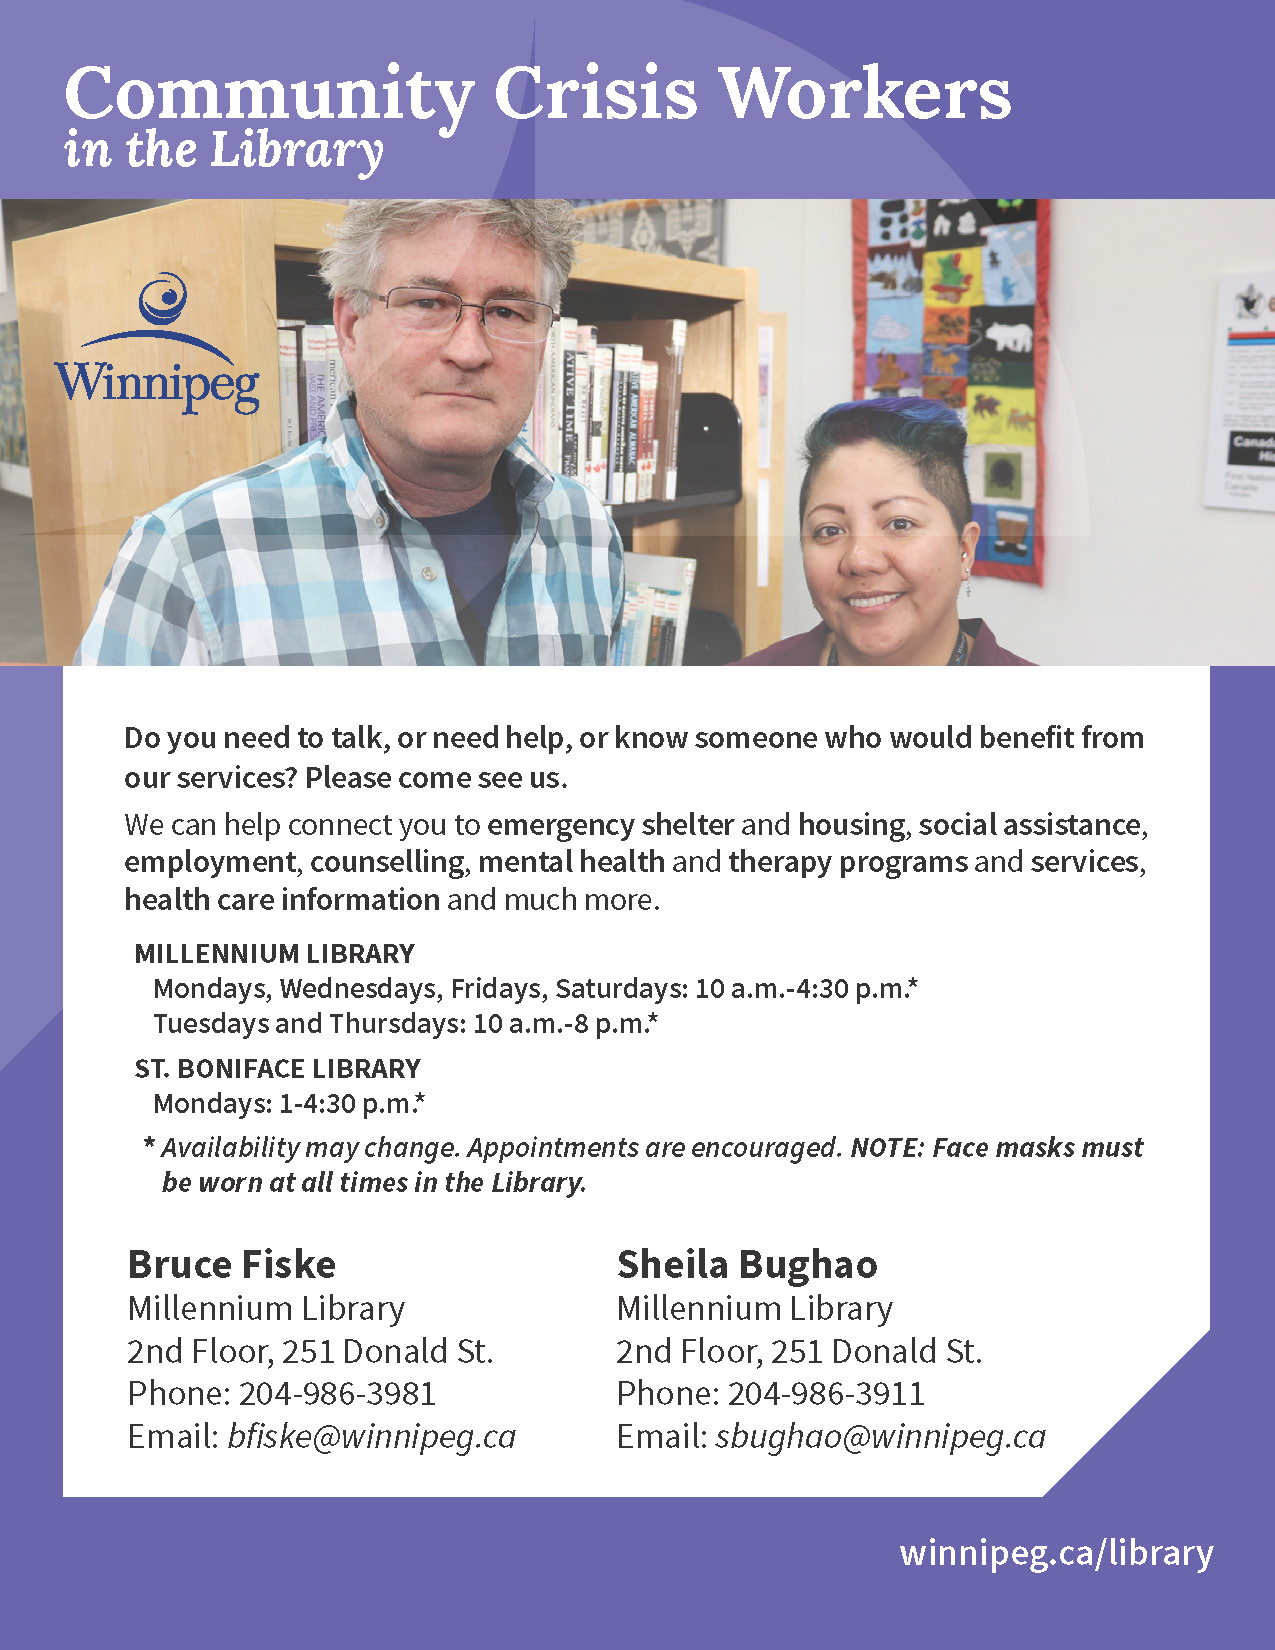 Community Crisis Worker - Winnipeg Public Library - City of